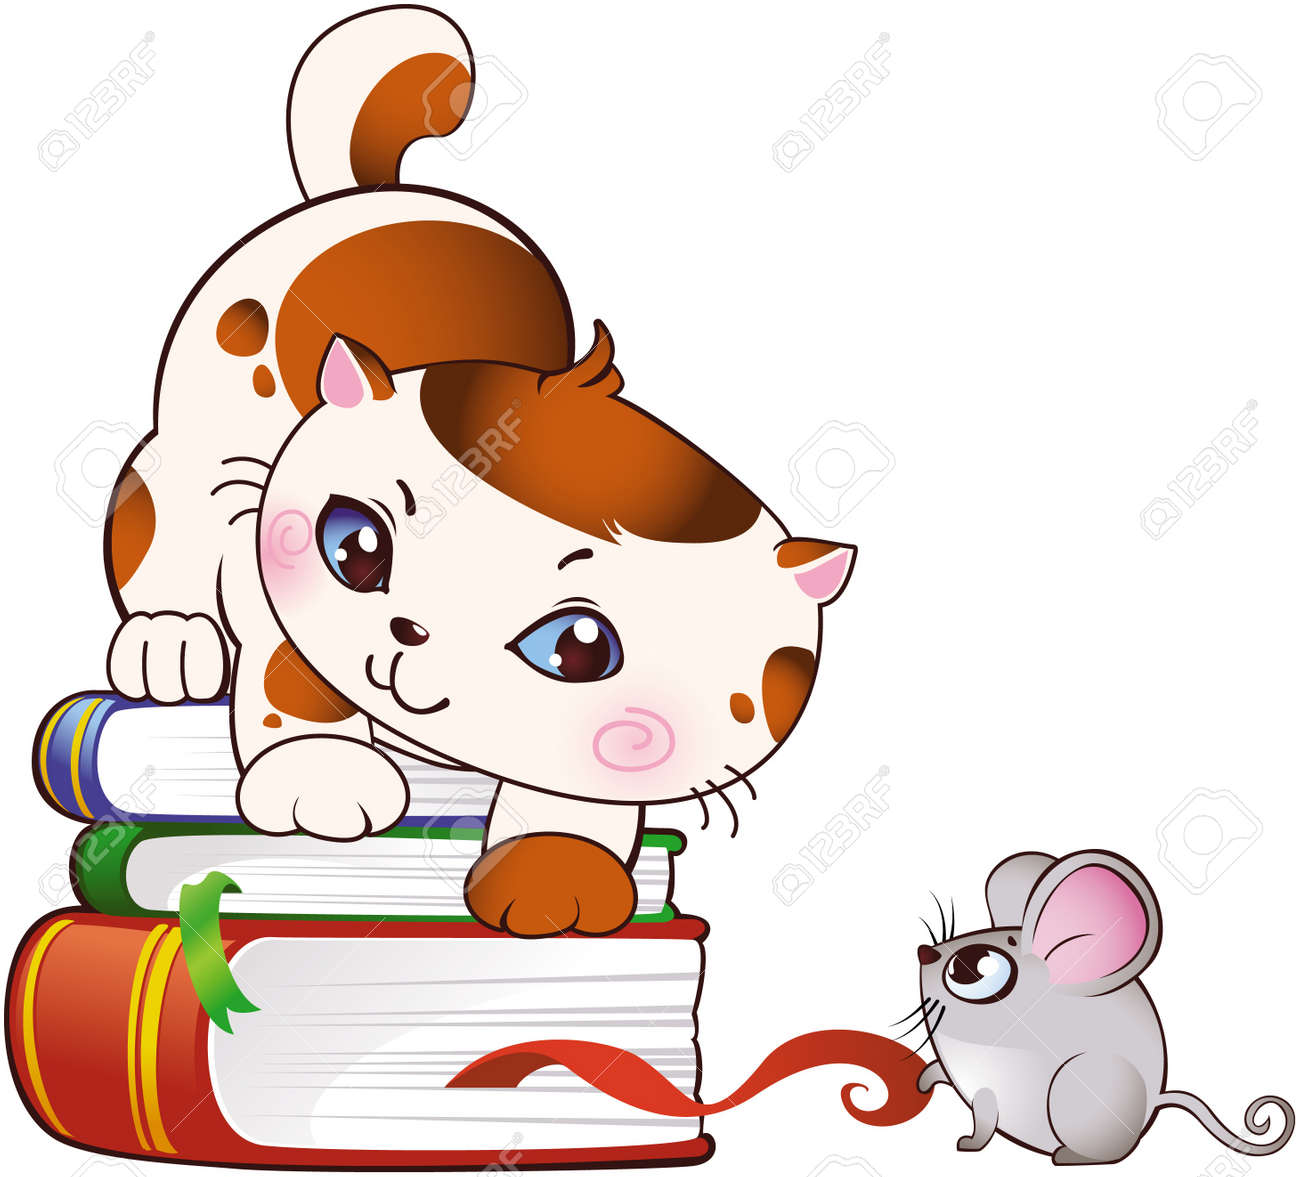 Kitten and mouse Stock Vector - 8912592